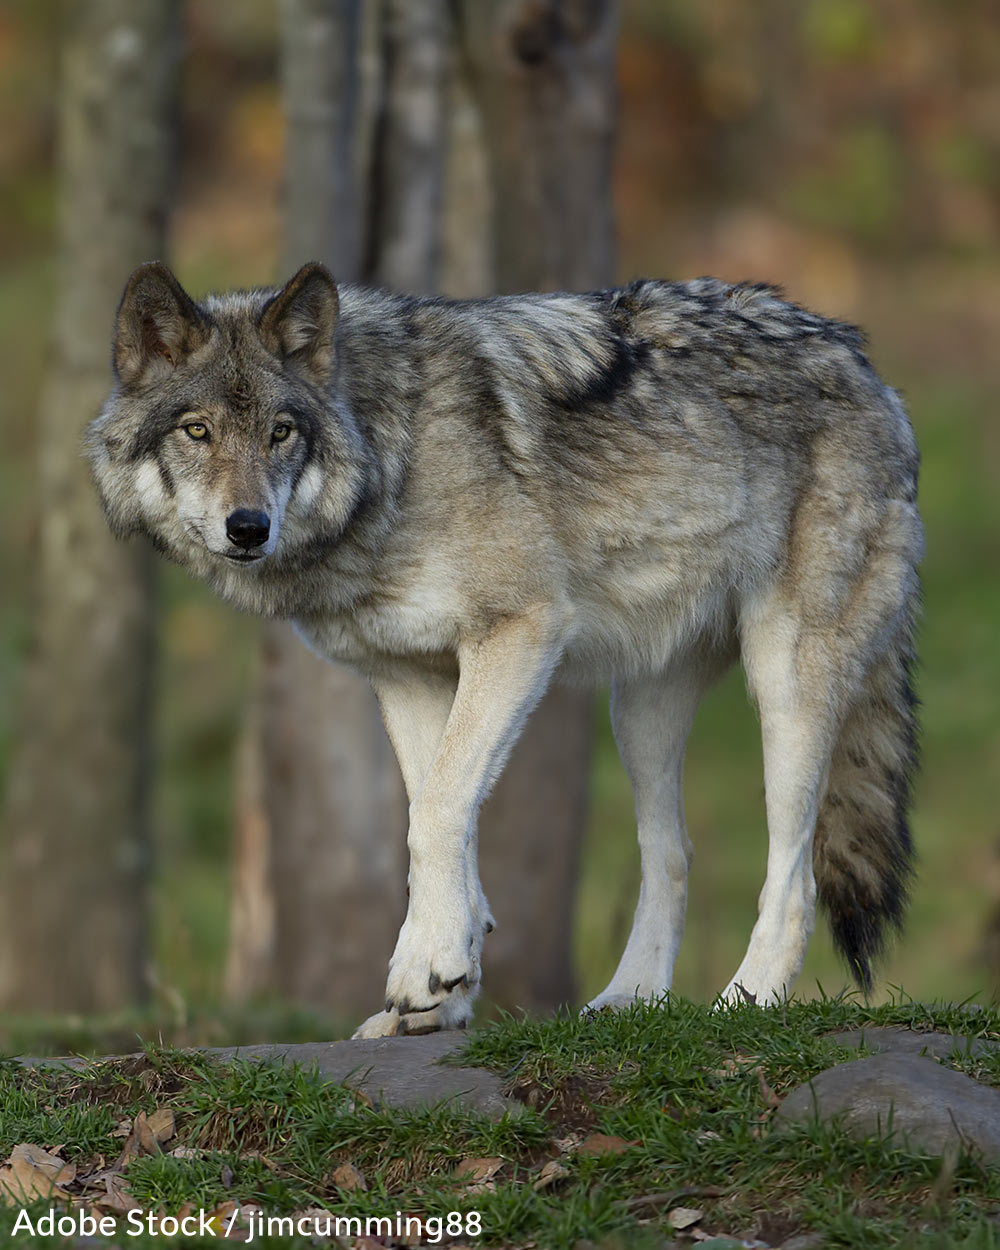 Idaho's Planned Wolf Cull Could Eliminate 90% of The State's Wolf Population